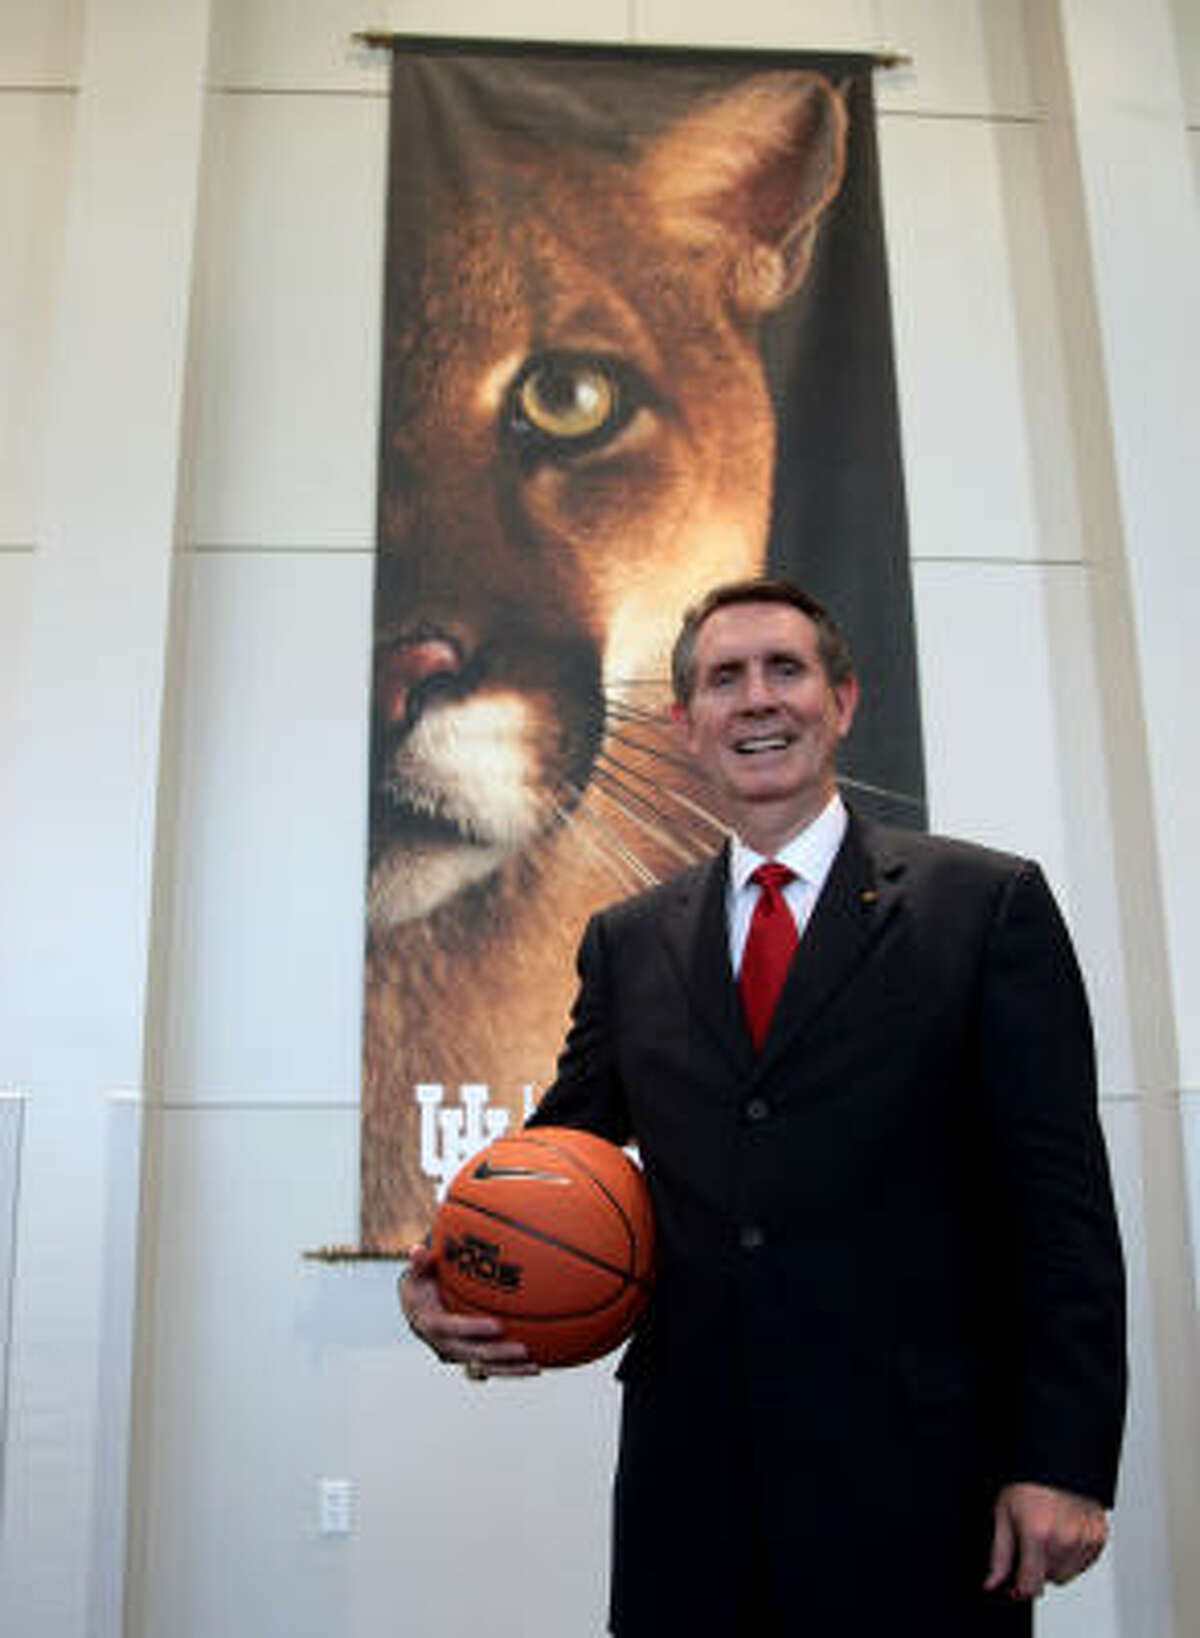 Newly-appointed UH men's basketball coach James Dickey has signed 25 future NBA players.